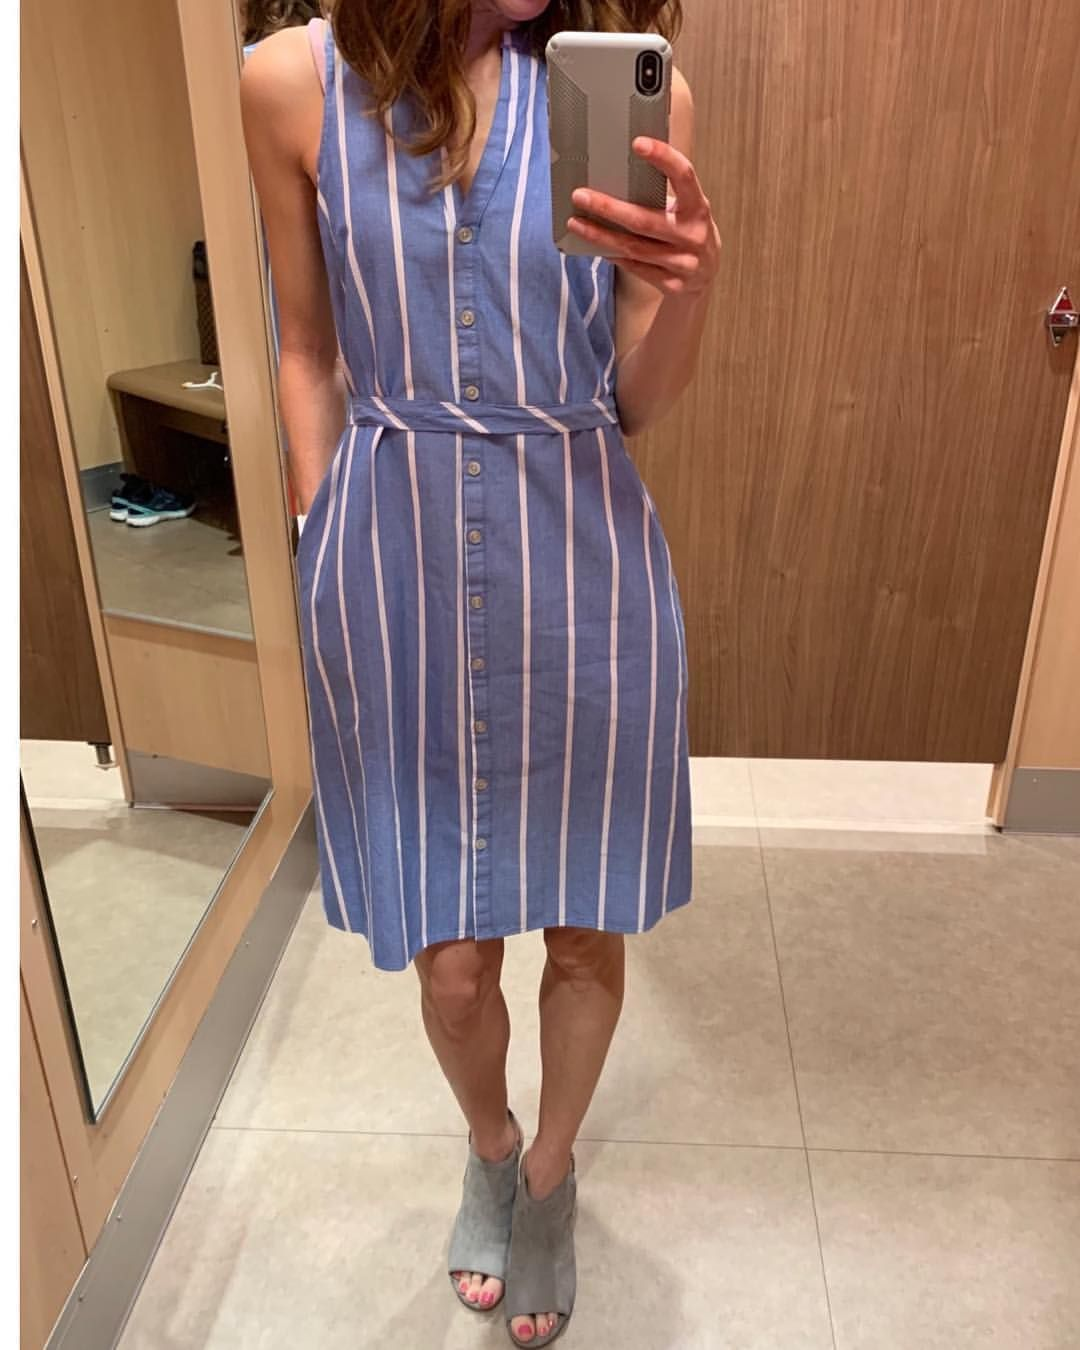 Spring Sumner Casual Dress From Target Striped Sleeveless Dress Spring Casual Casual [ 1350 x 1080 Pixel ]